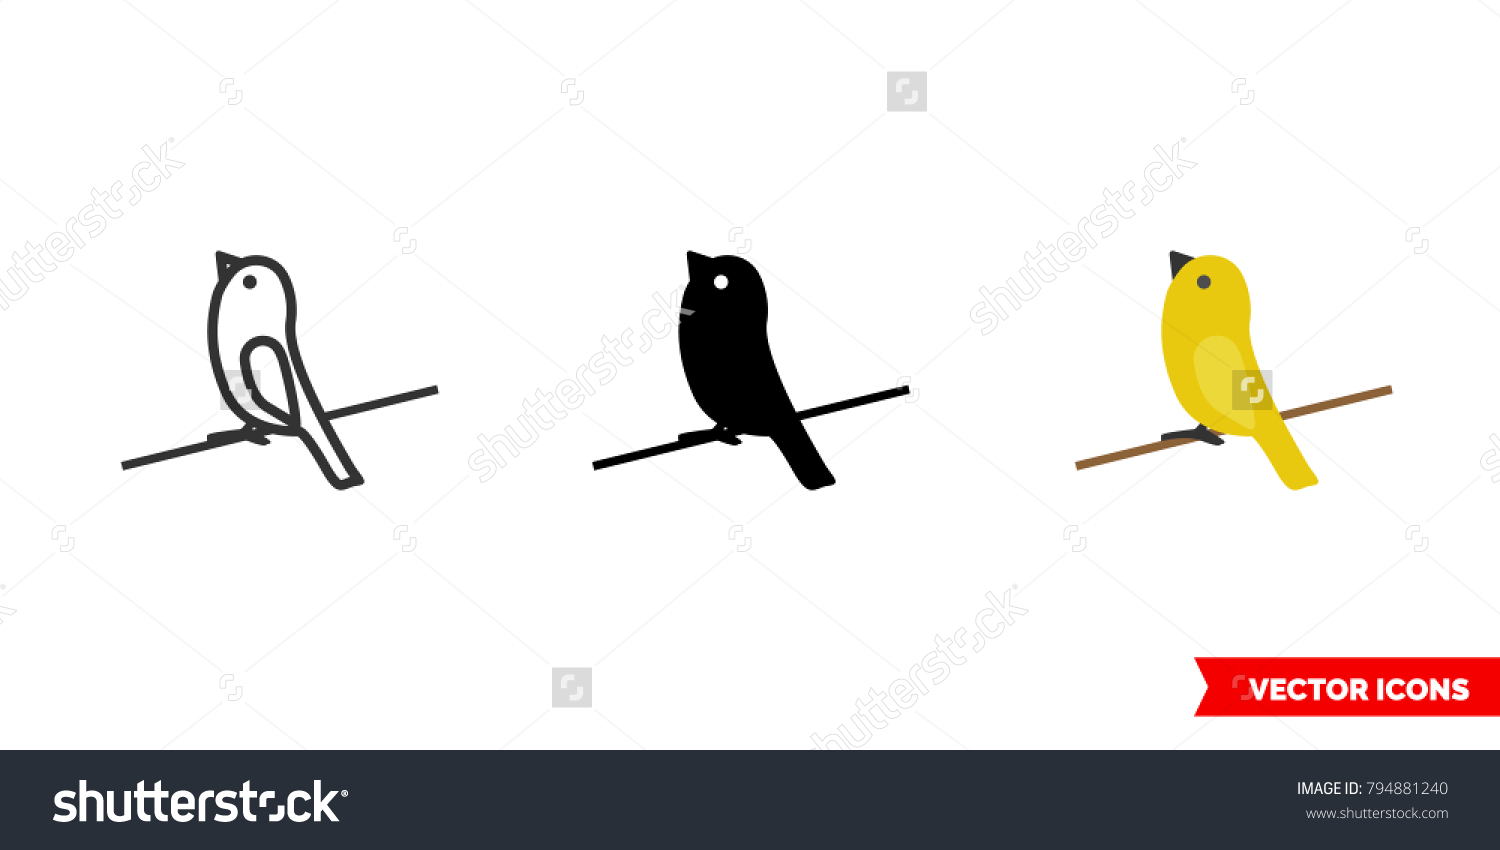 Canary Icon 3 Types Color Black Stock Vector Royalty Free